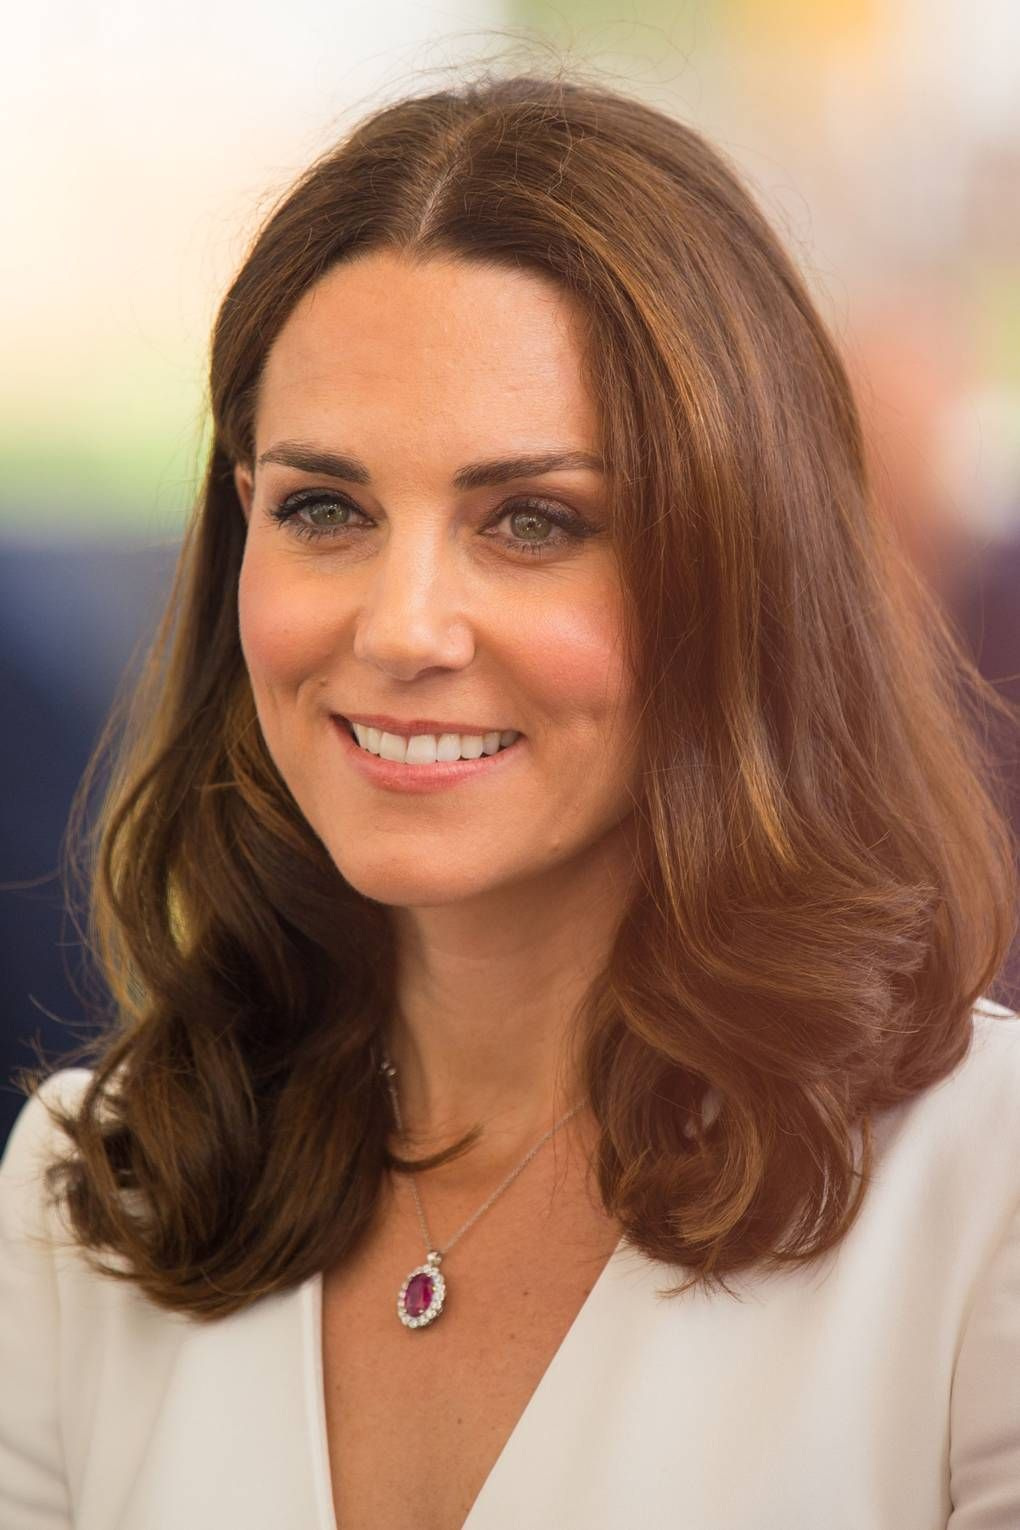 The Duchess Of Cambridge S Most Memorable Hair Moments Kate Middleton Hair Kate Middleton Makeup Kate Middleton